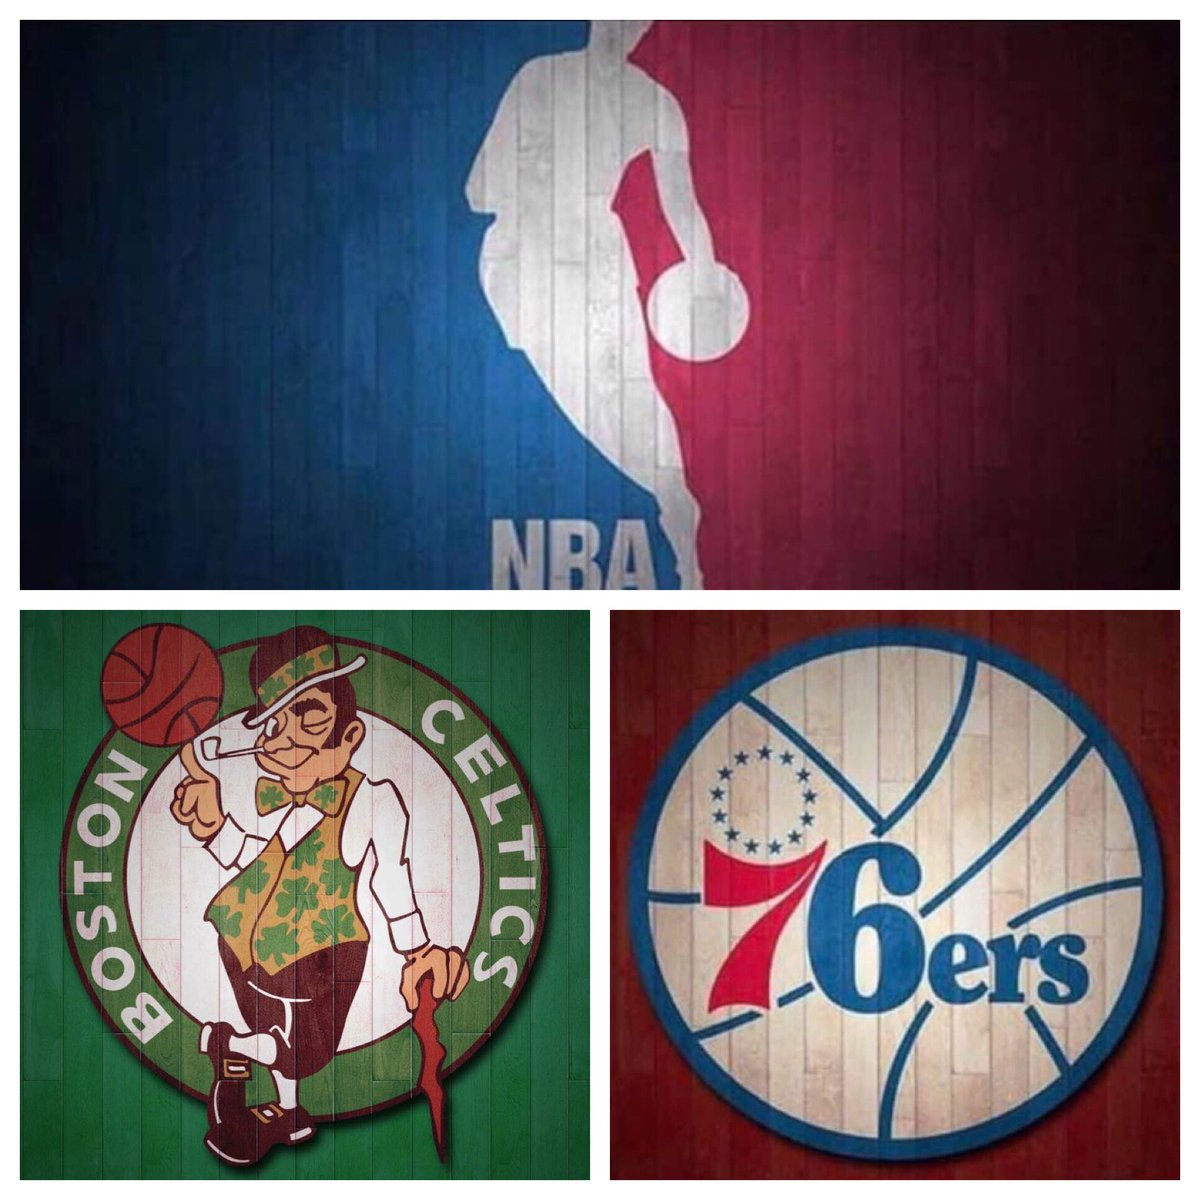 #SPIKESN #Celtics @ #76ers is underway! #NBA #BOSvsPHI #CUsRise #HereTheyCome